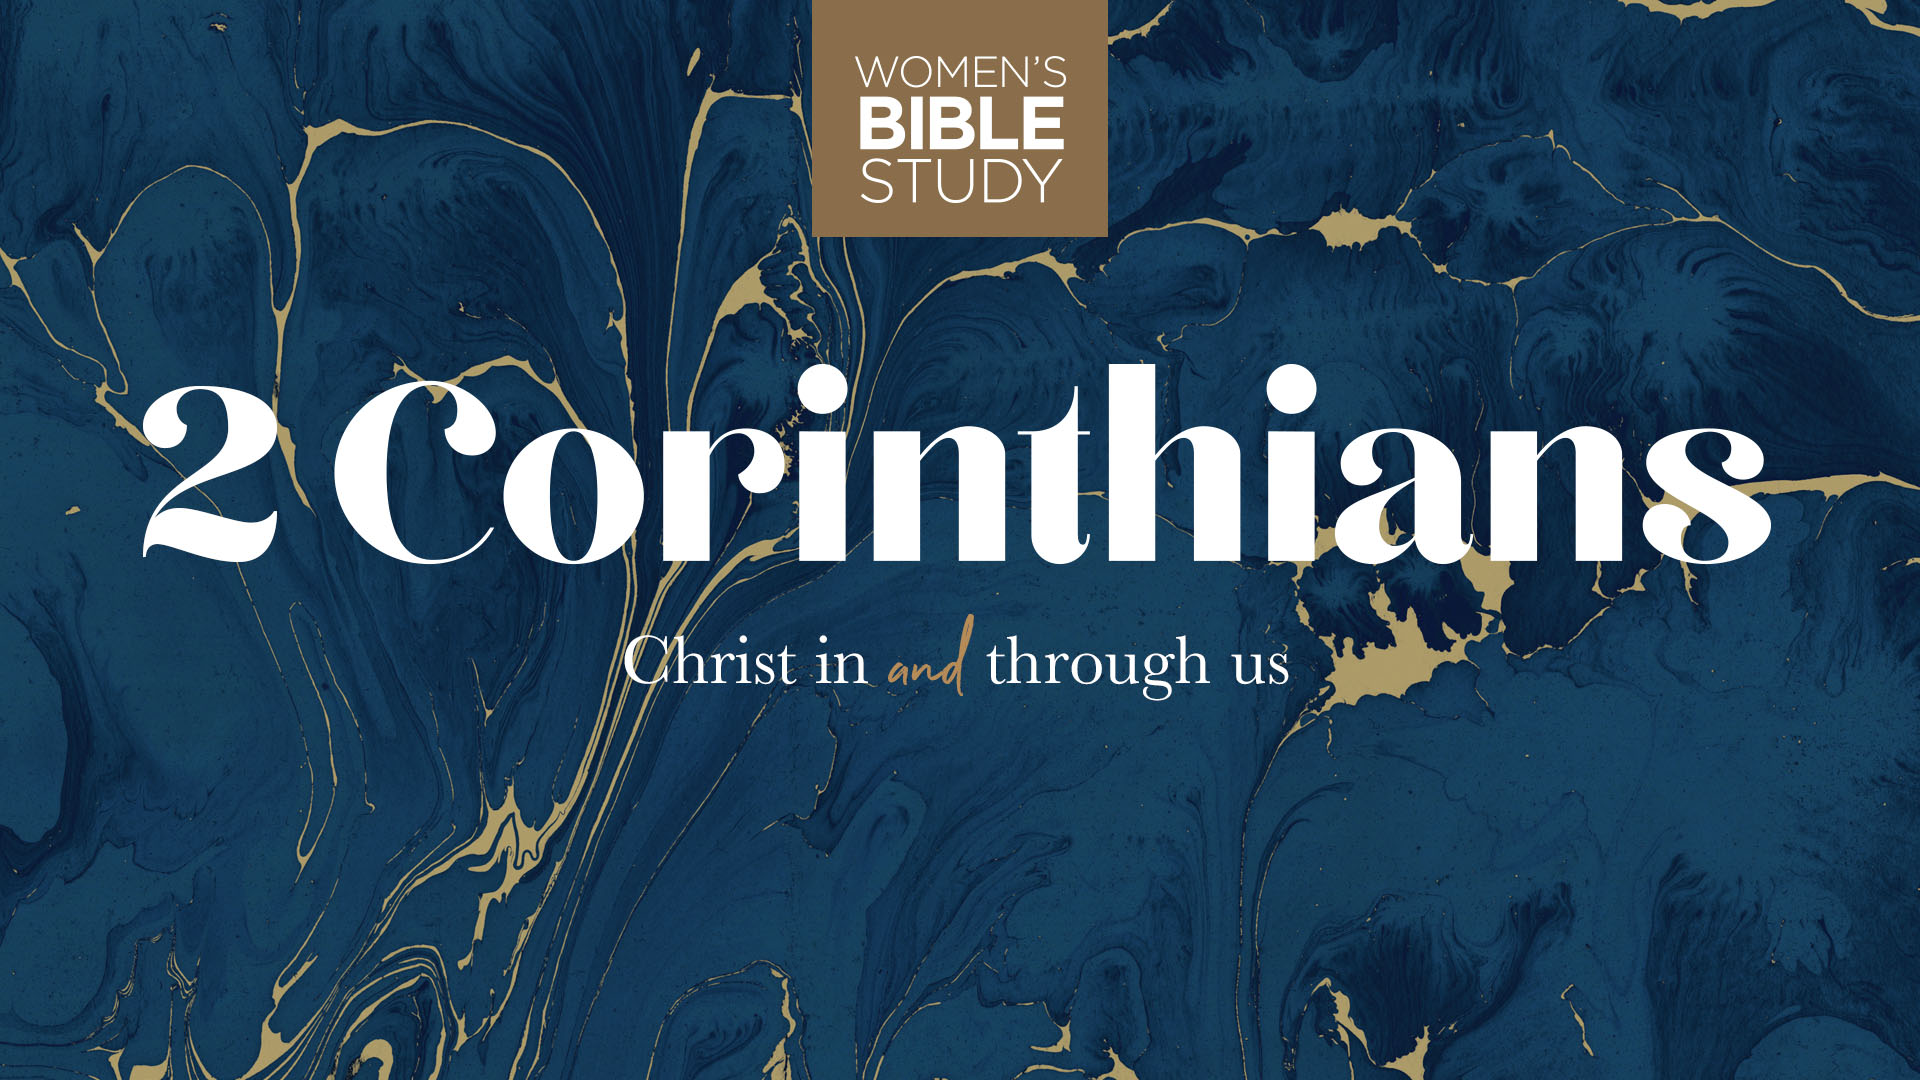 2 Corinthians 1:12-2:4 - Concern for the Corinthians and Confidence in God